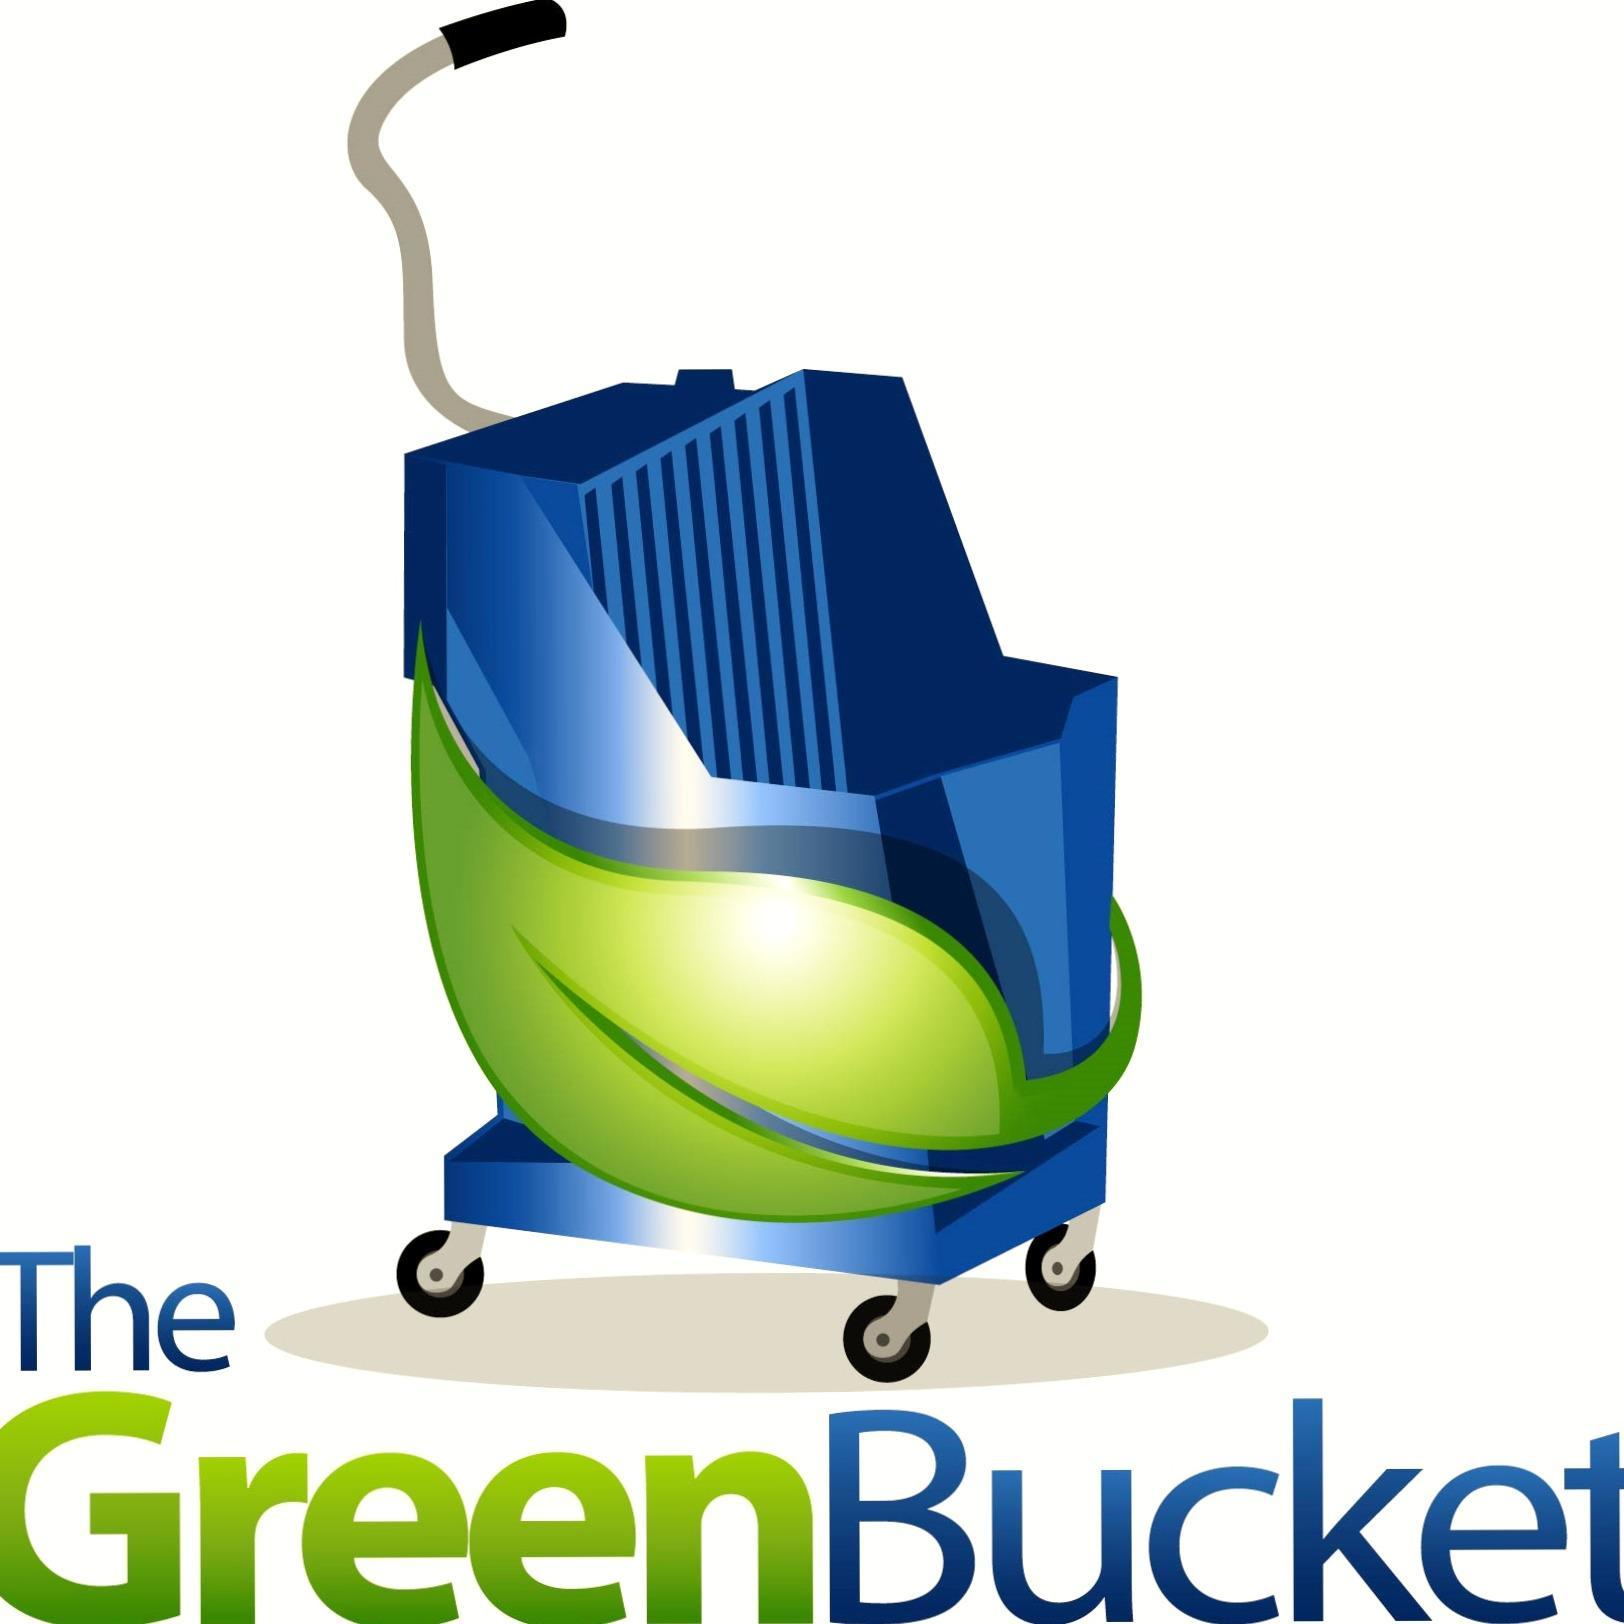 The Green Bucket LLC